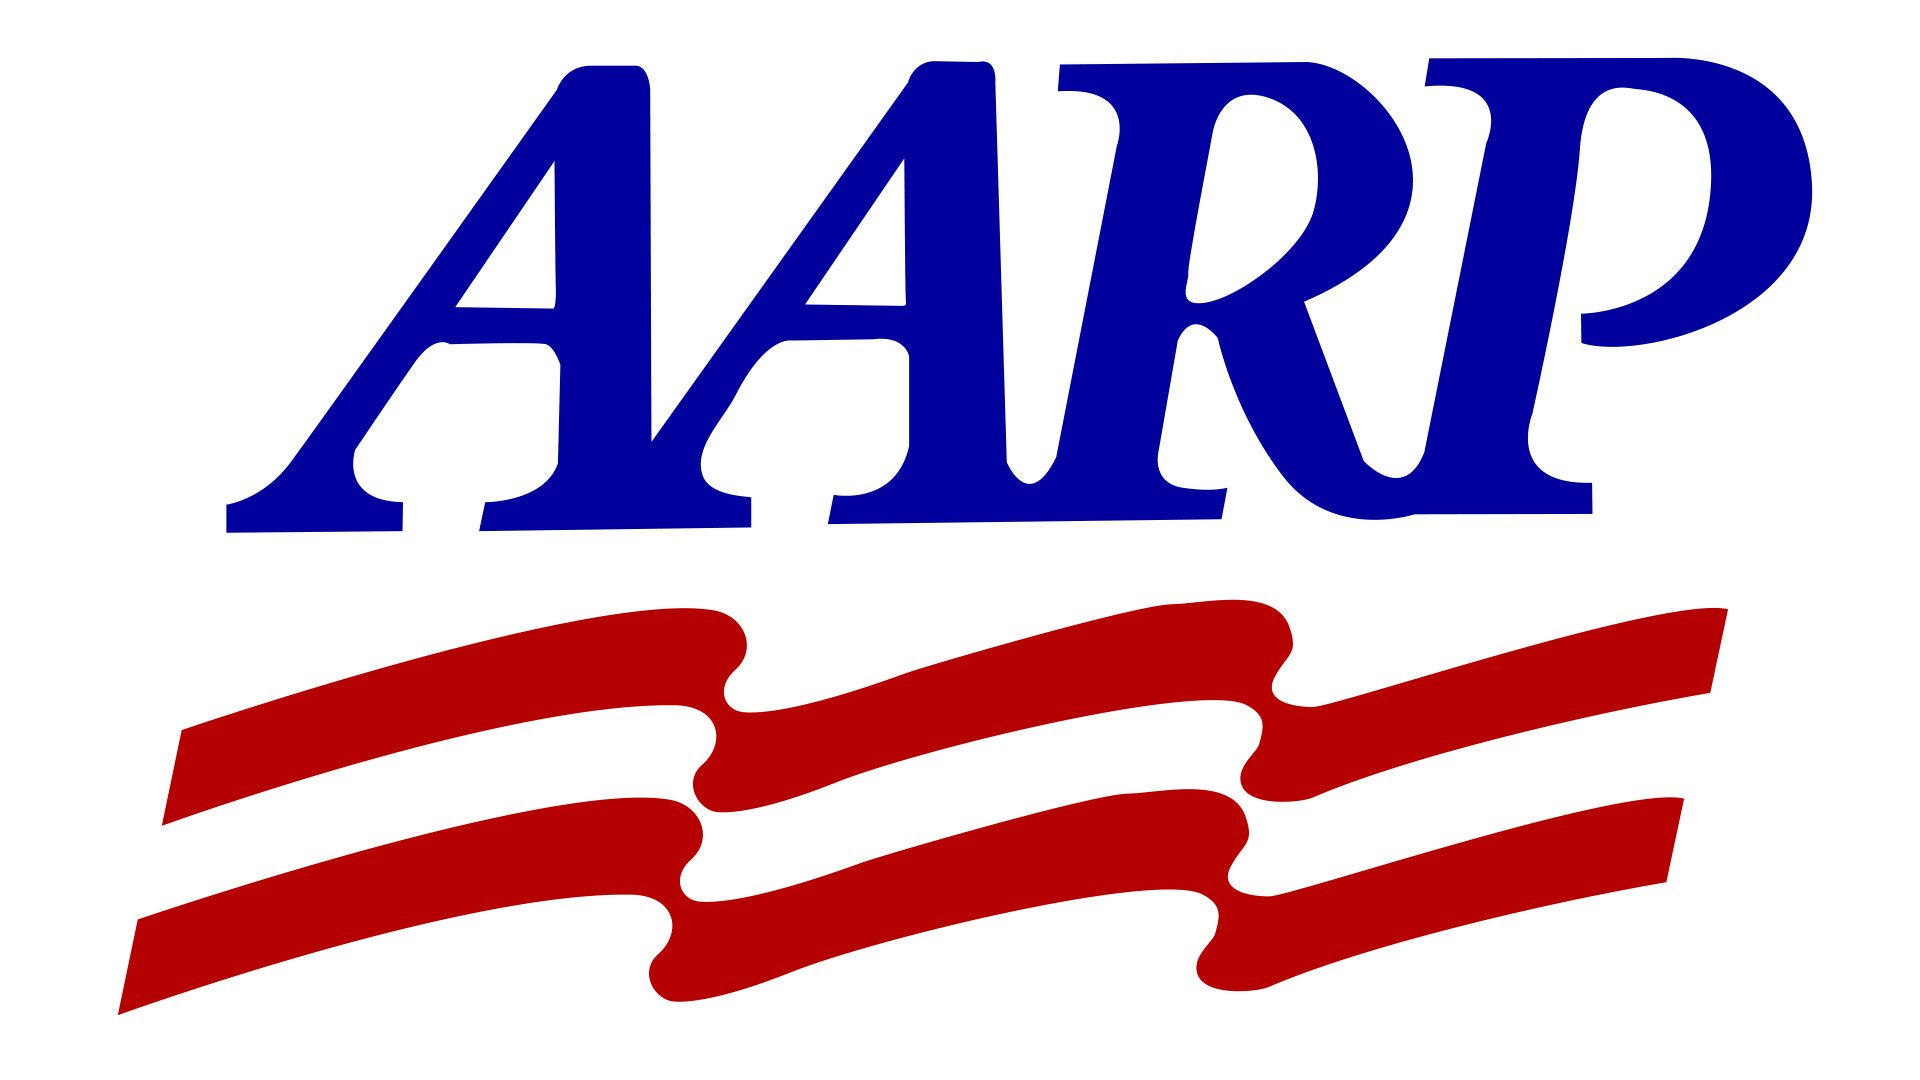 AARP Logo, symbol, meaning, History and Evolution